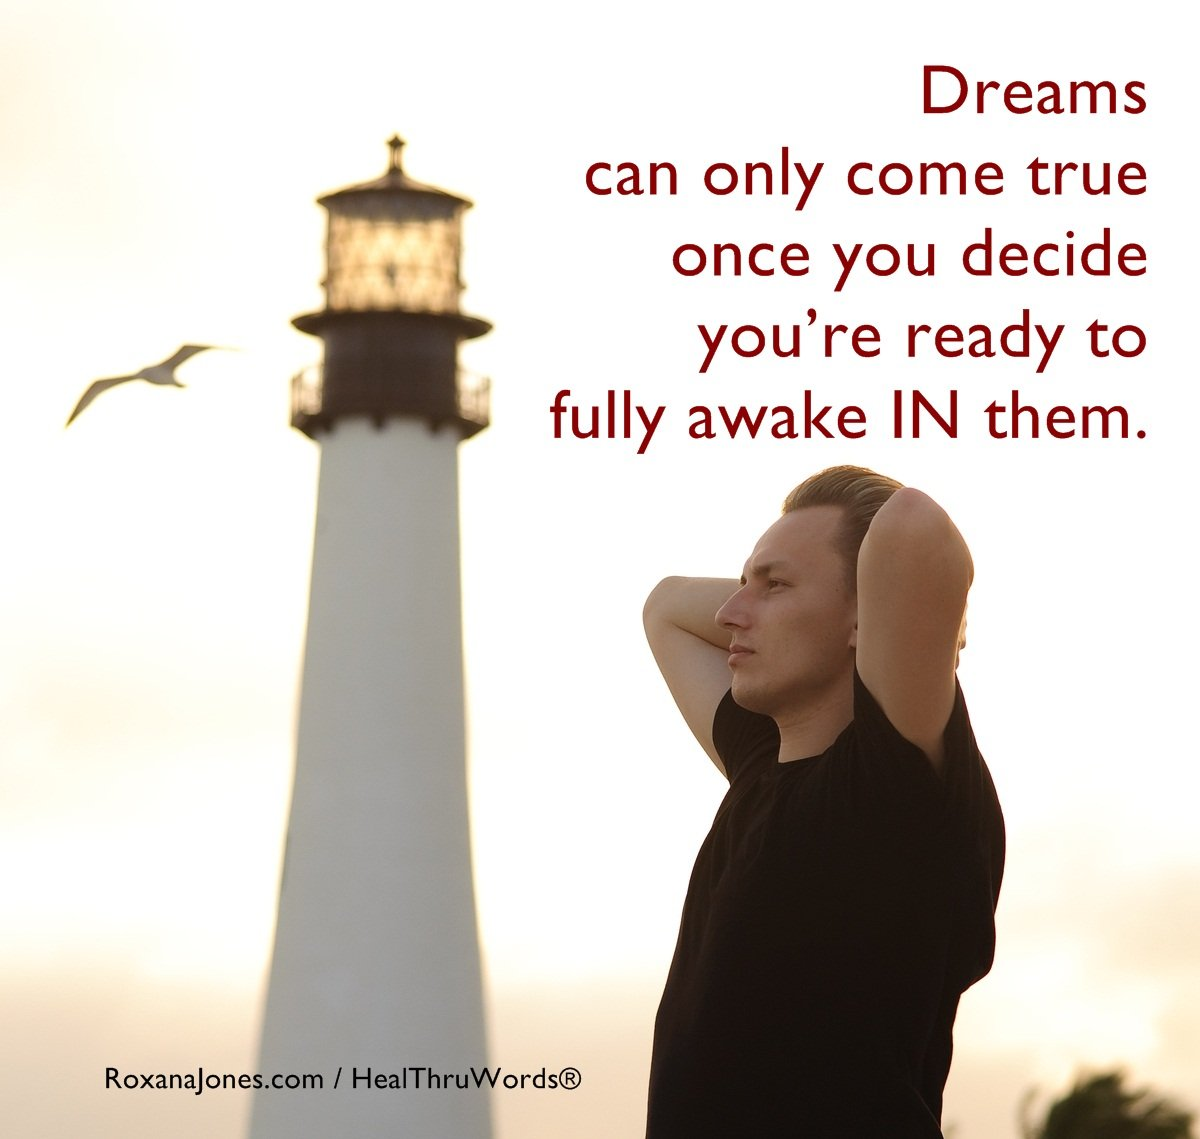 Inspirational Image: In your Dreams